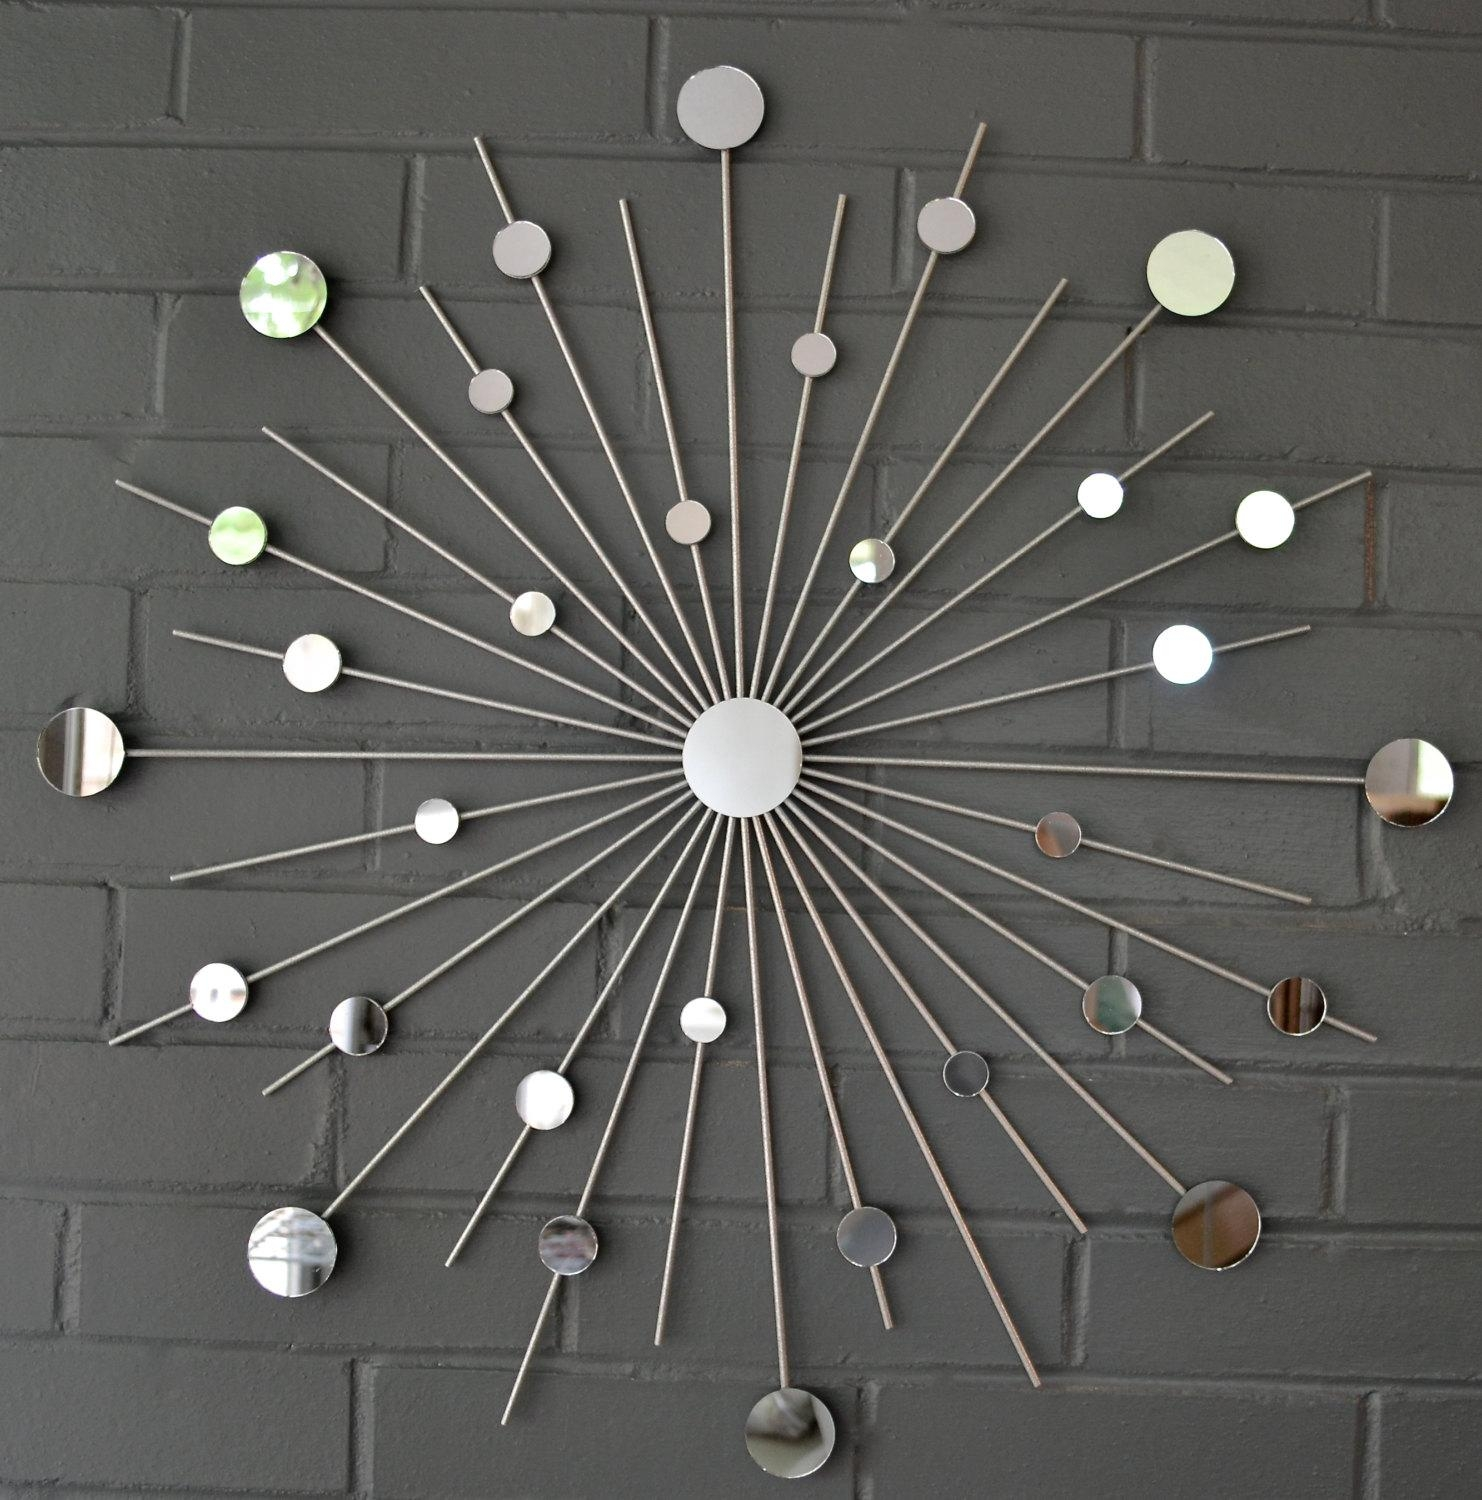 Decorating: 24 Starburst Modern Metal Wall Art Mirror Retro For With Regard To Silver Starburst Wall Art (Image 3 of 20)